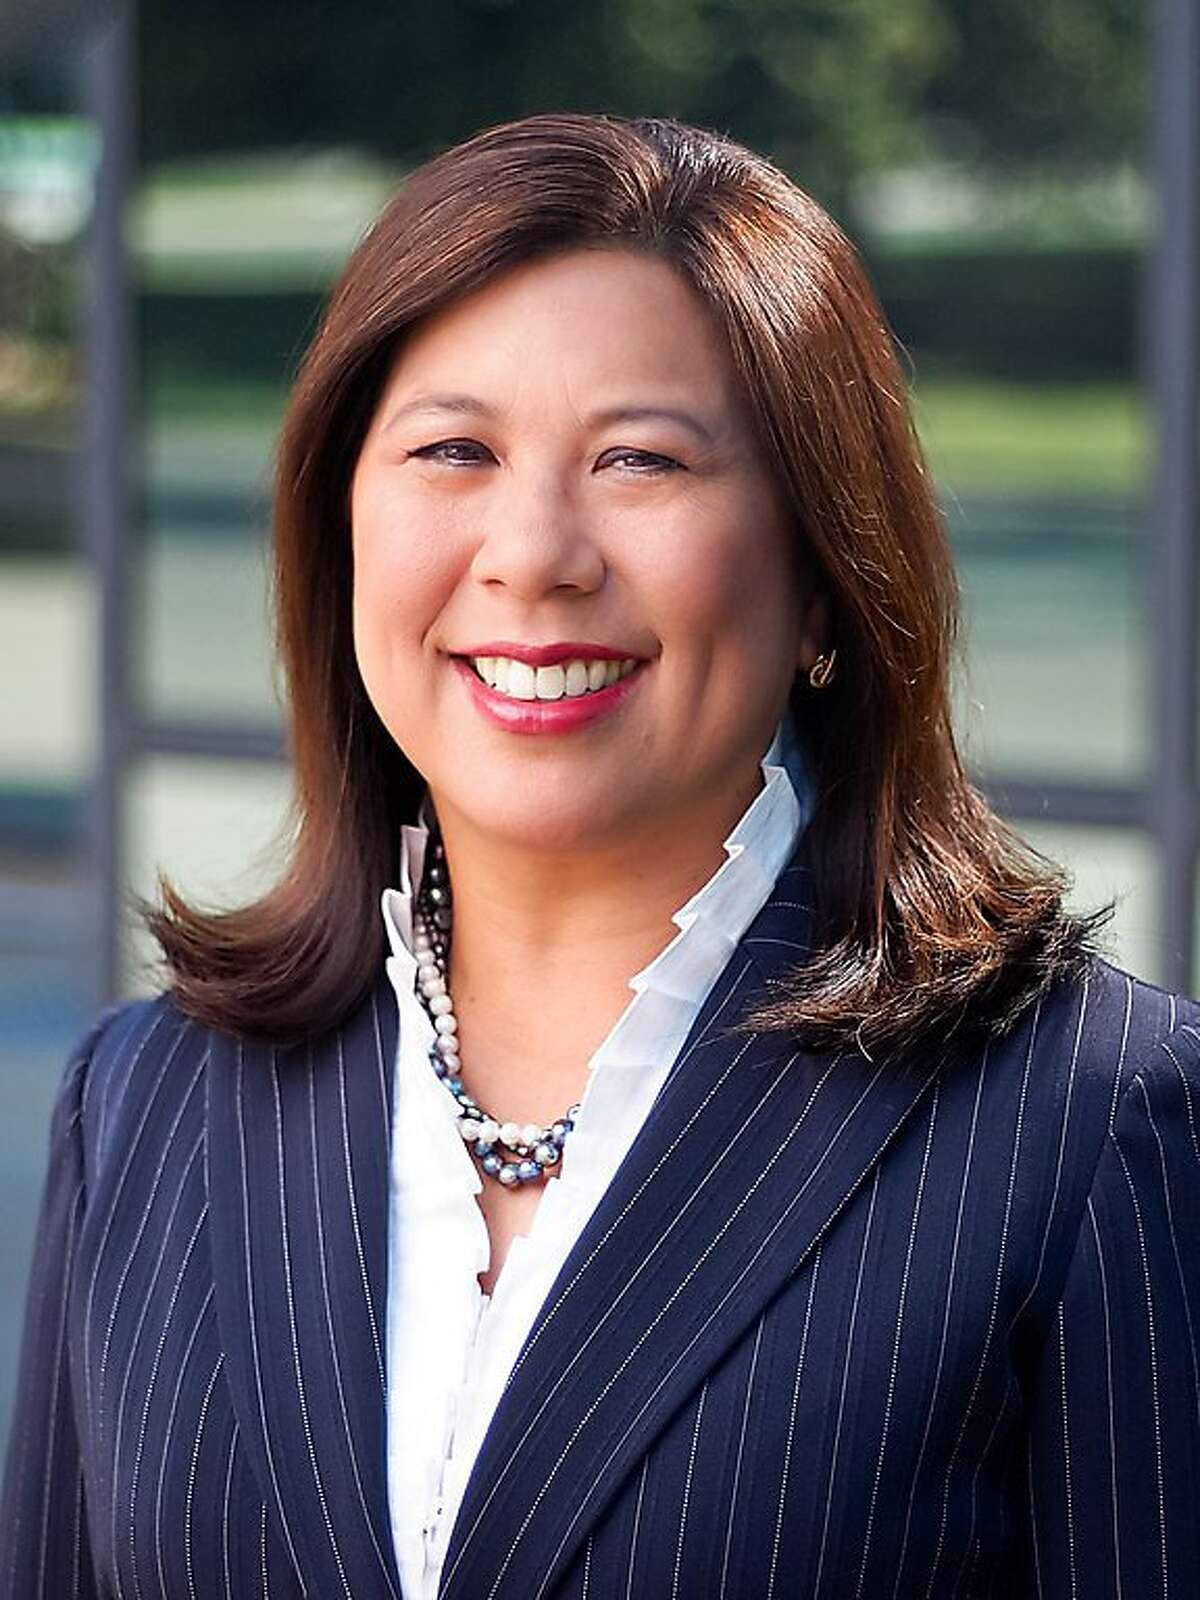 It finally looks like Betty Yee will face top vote-getter Ashley Swearengin for state controller.